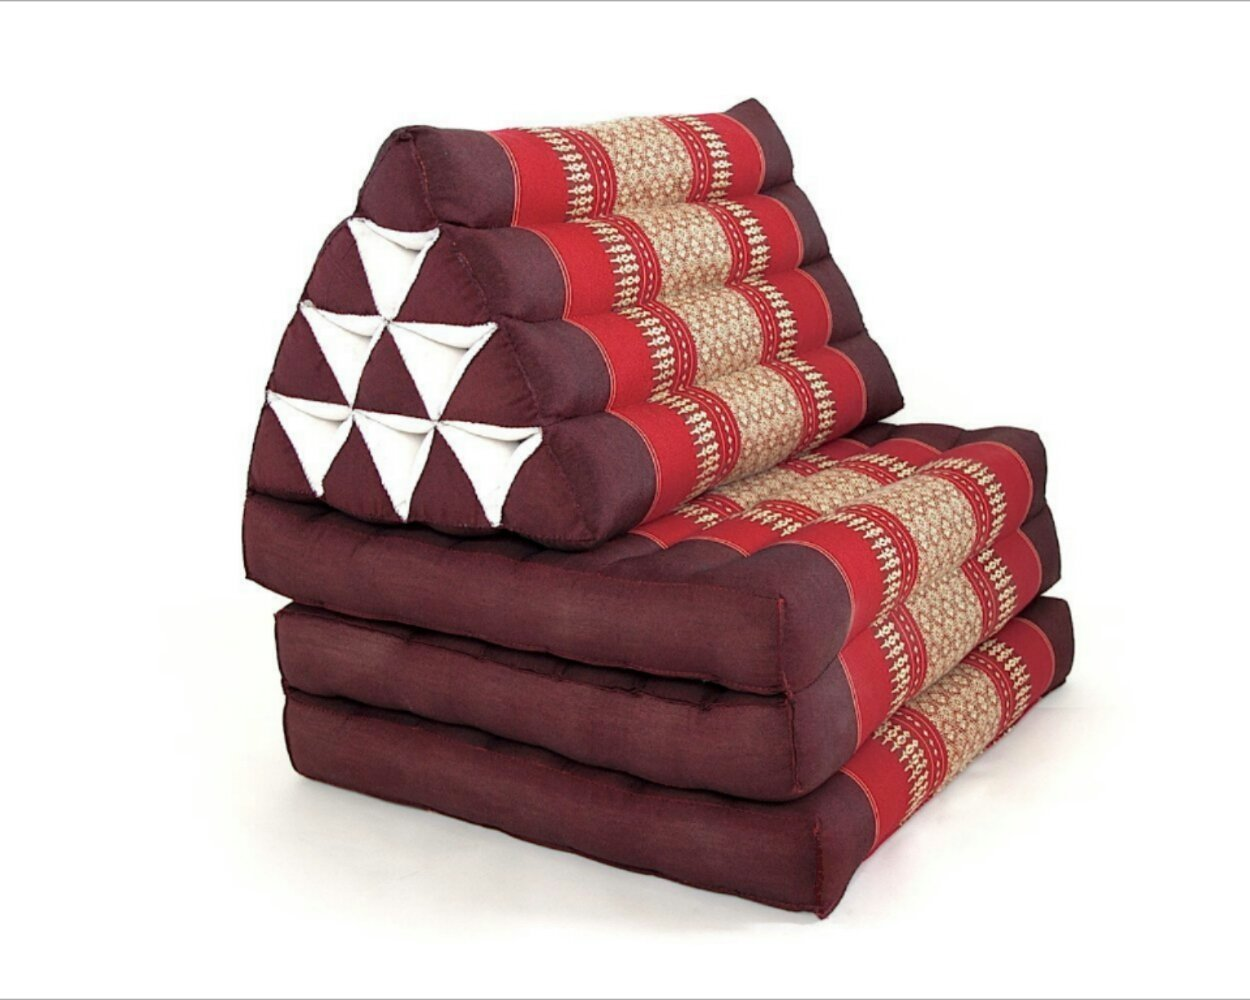 Foldout Triangle Thai Cushion, 67x21x3 inches, Kapok Fabric, Red, Premium Double Stitched by Thai OTOP by Kaikeng